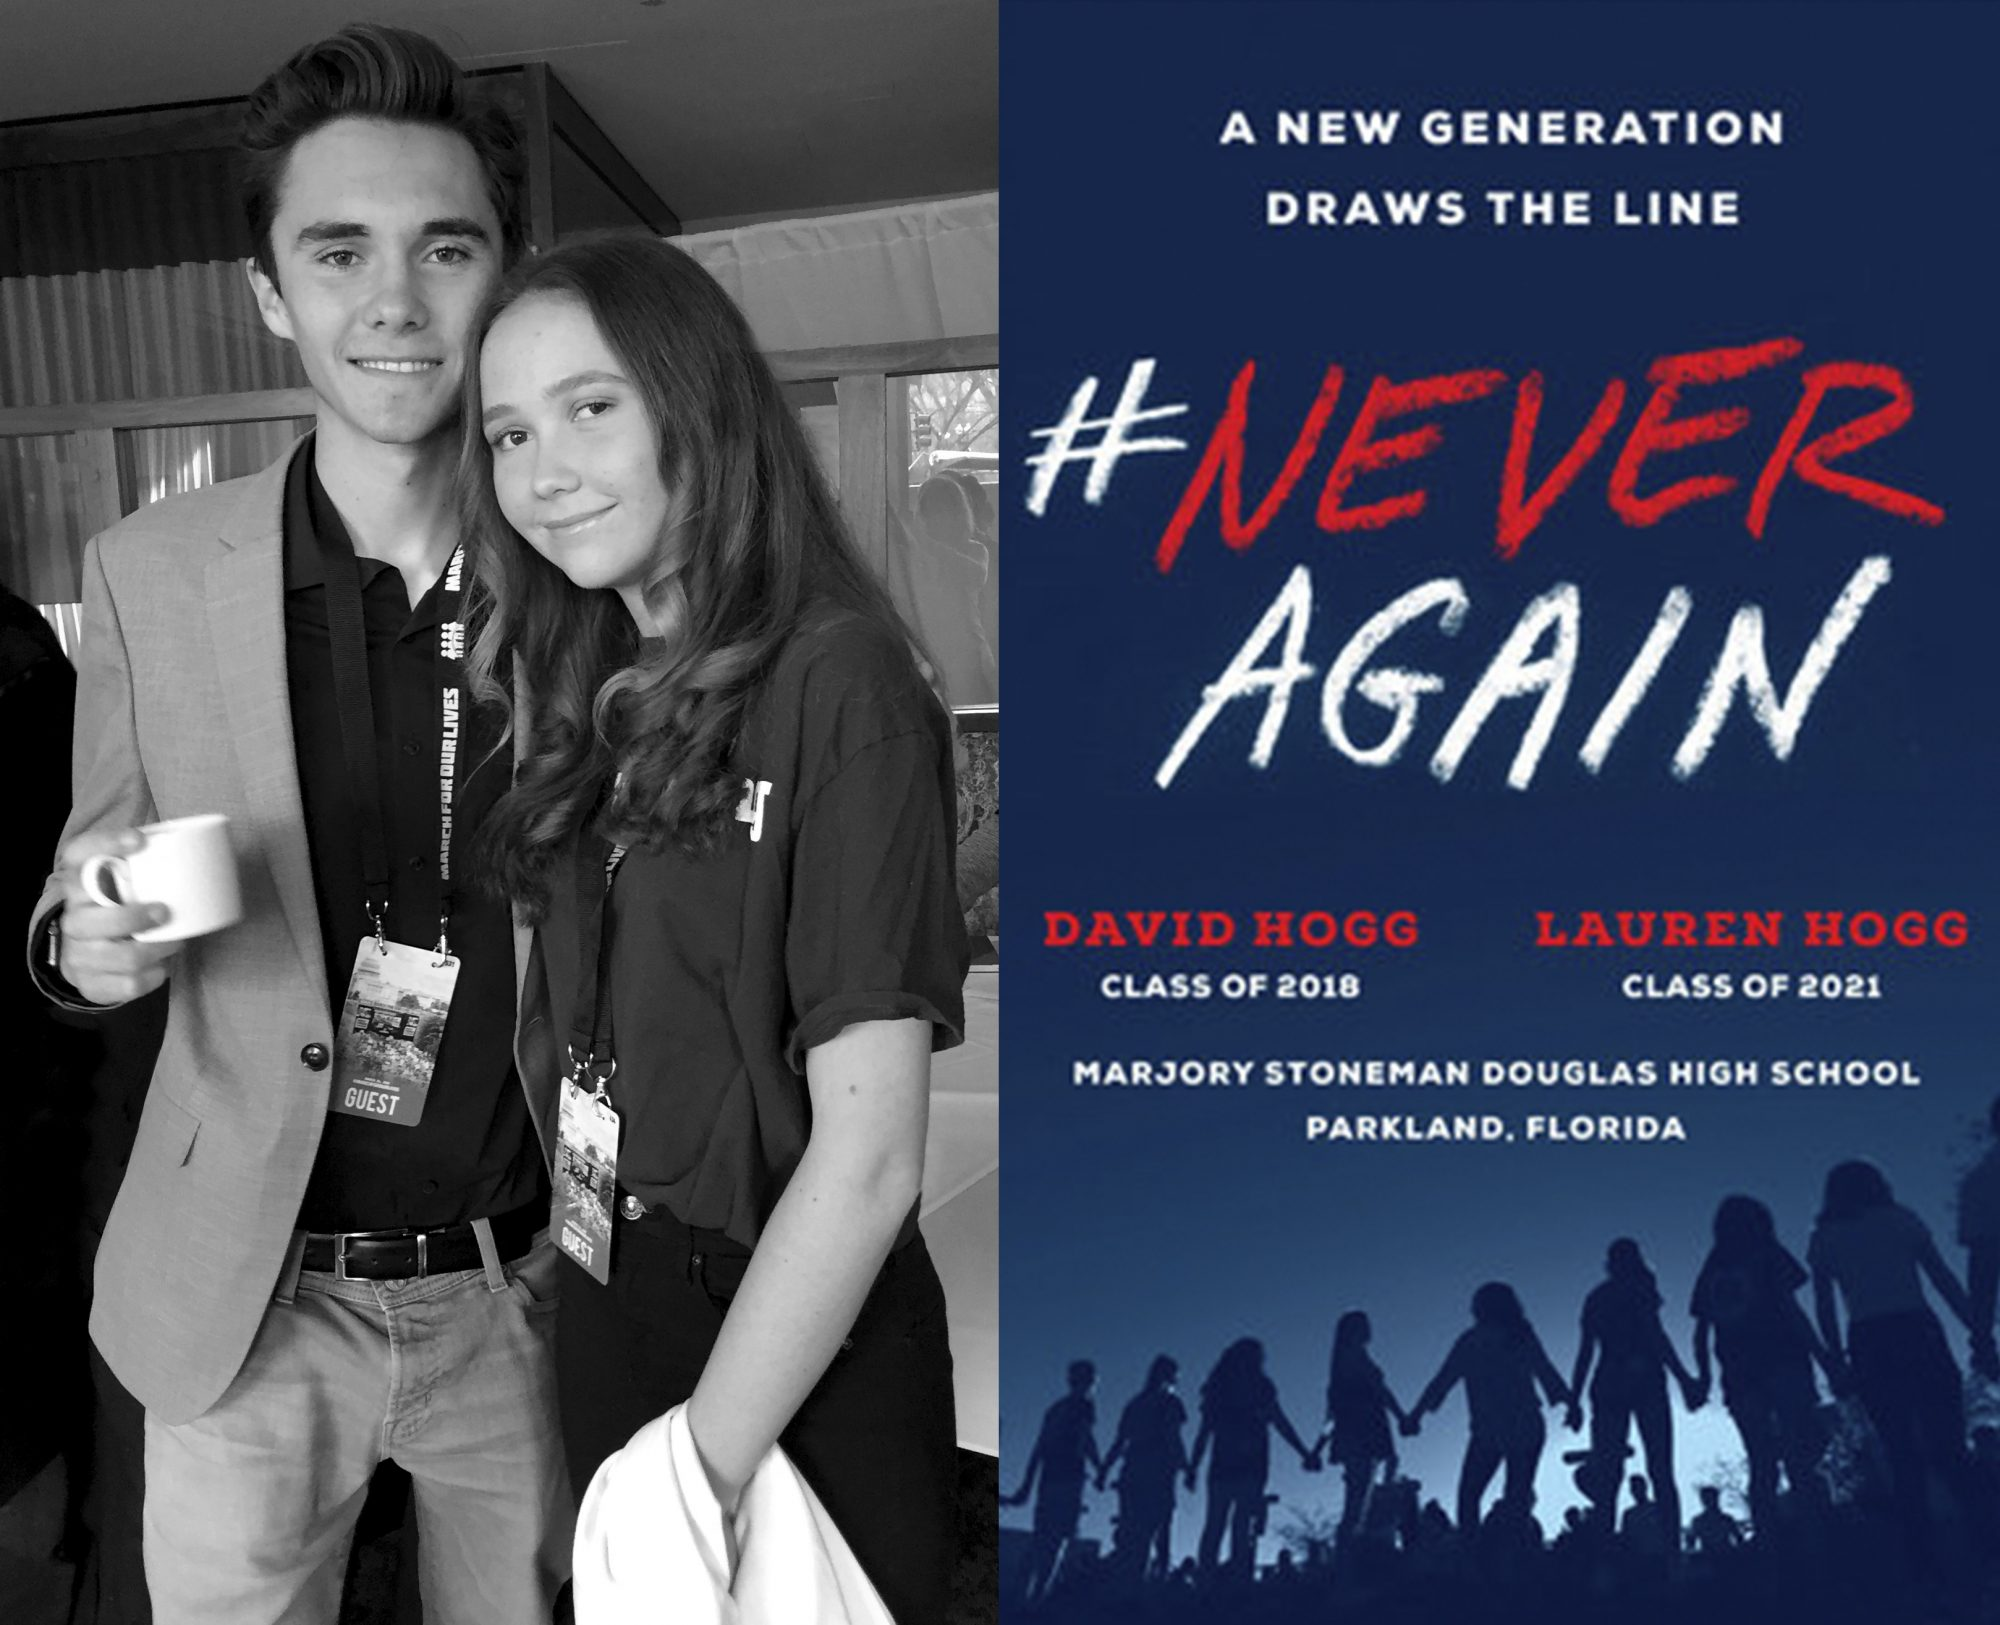 picture-of-david-hogg-lauren-hogg-never-again-book-photo